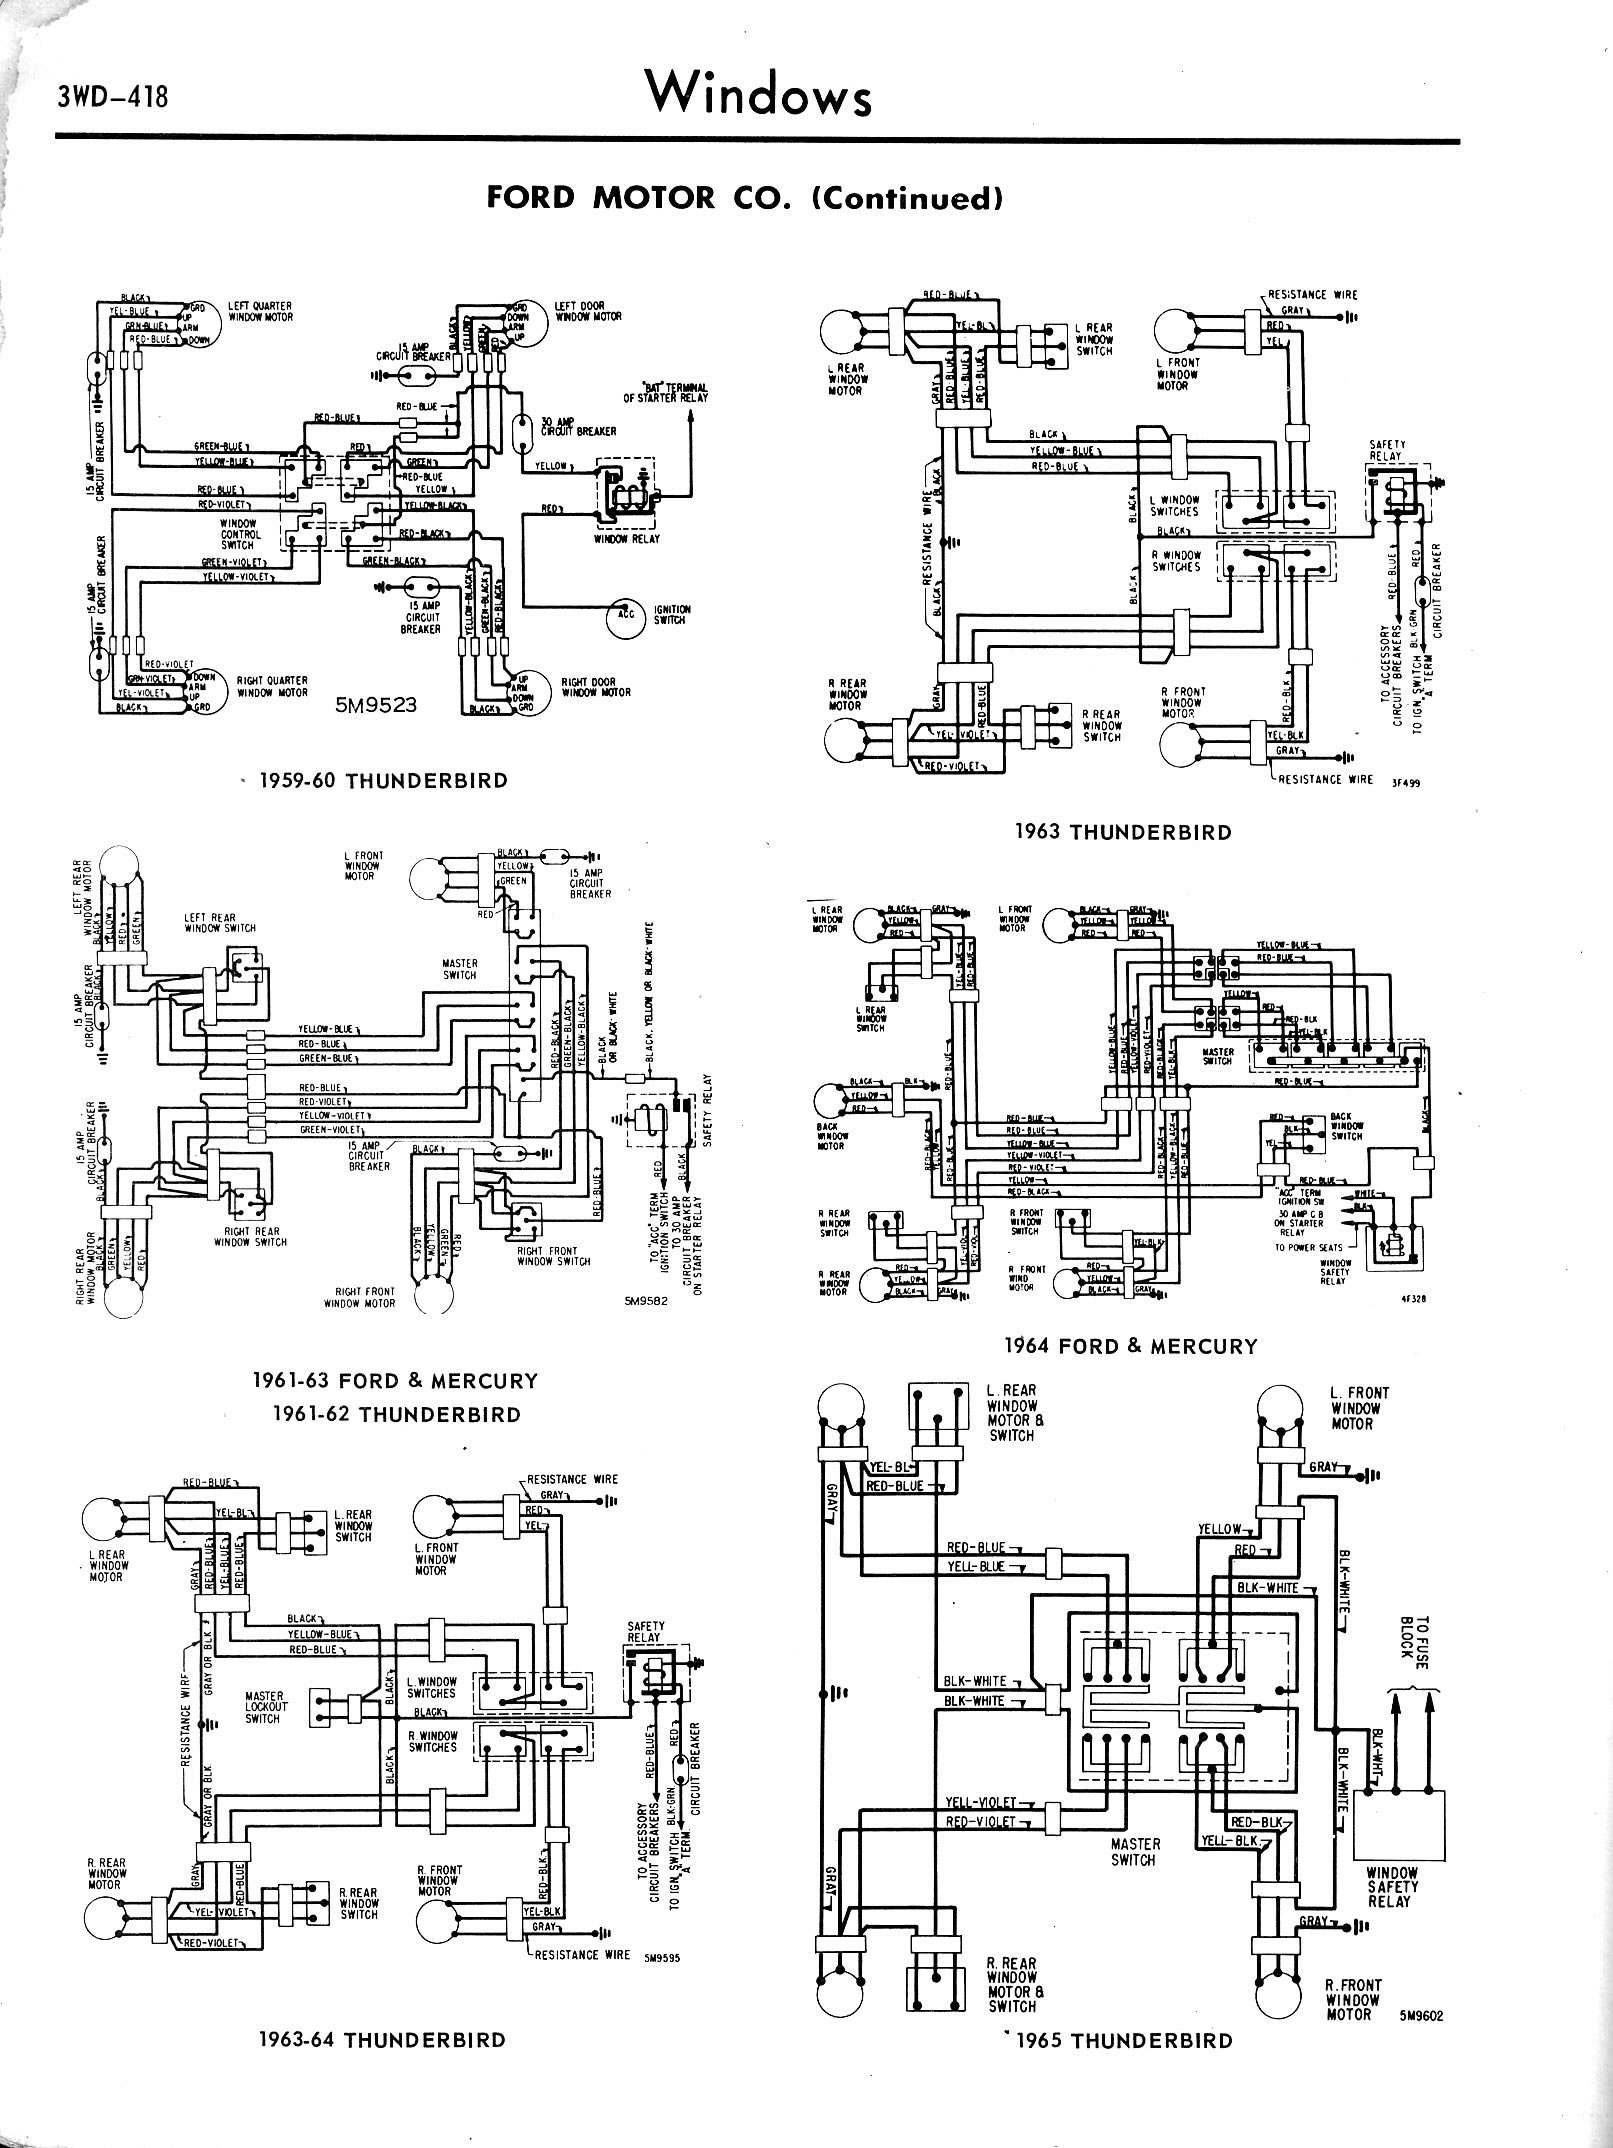 Wiring Diagram 1964 Thunderbird Accessories List Of Schematic For 57 1957 1965 Accessory Diagrams 3wd 418 Rh Oldcarmanualproject Com